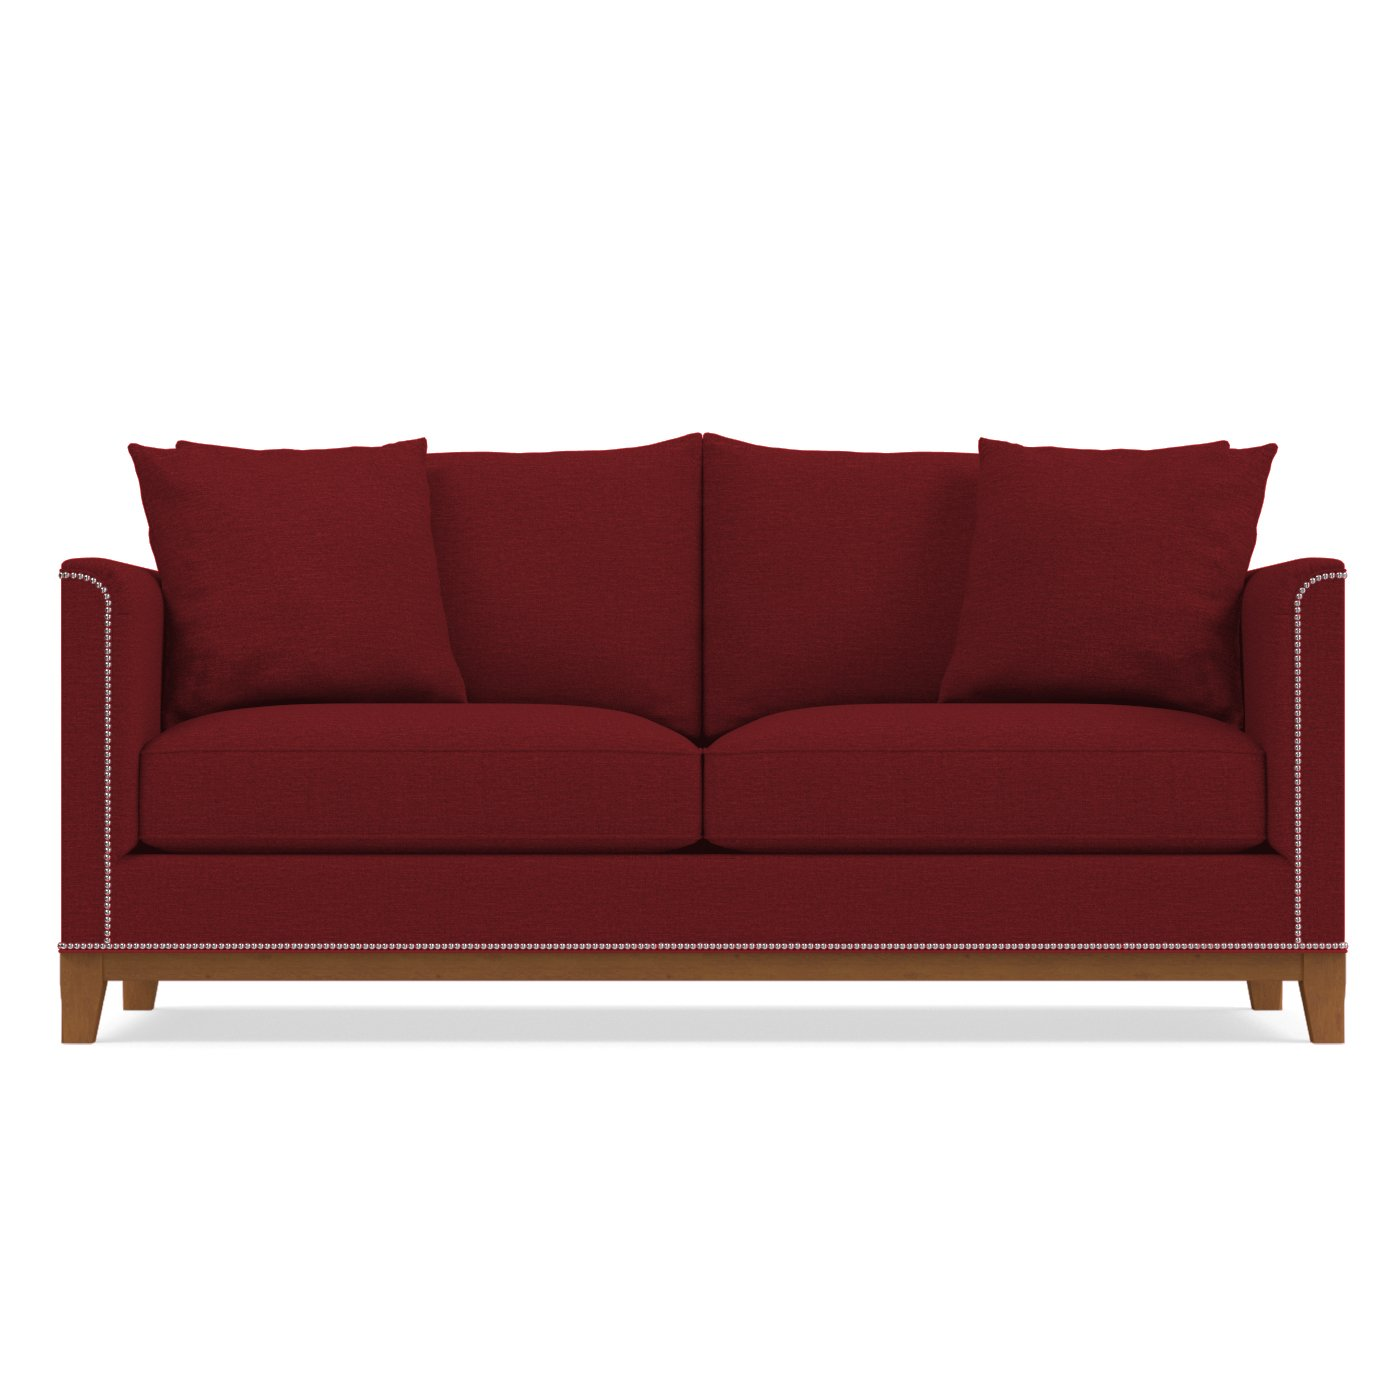 La Brea Studded Sofa Choice of Fabrics Apt2B